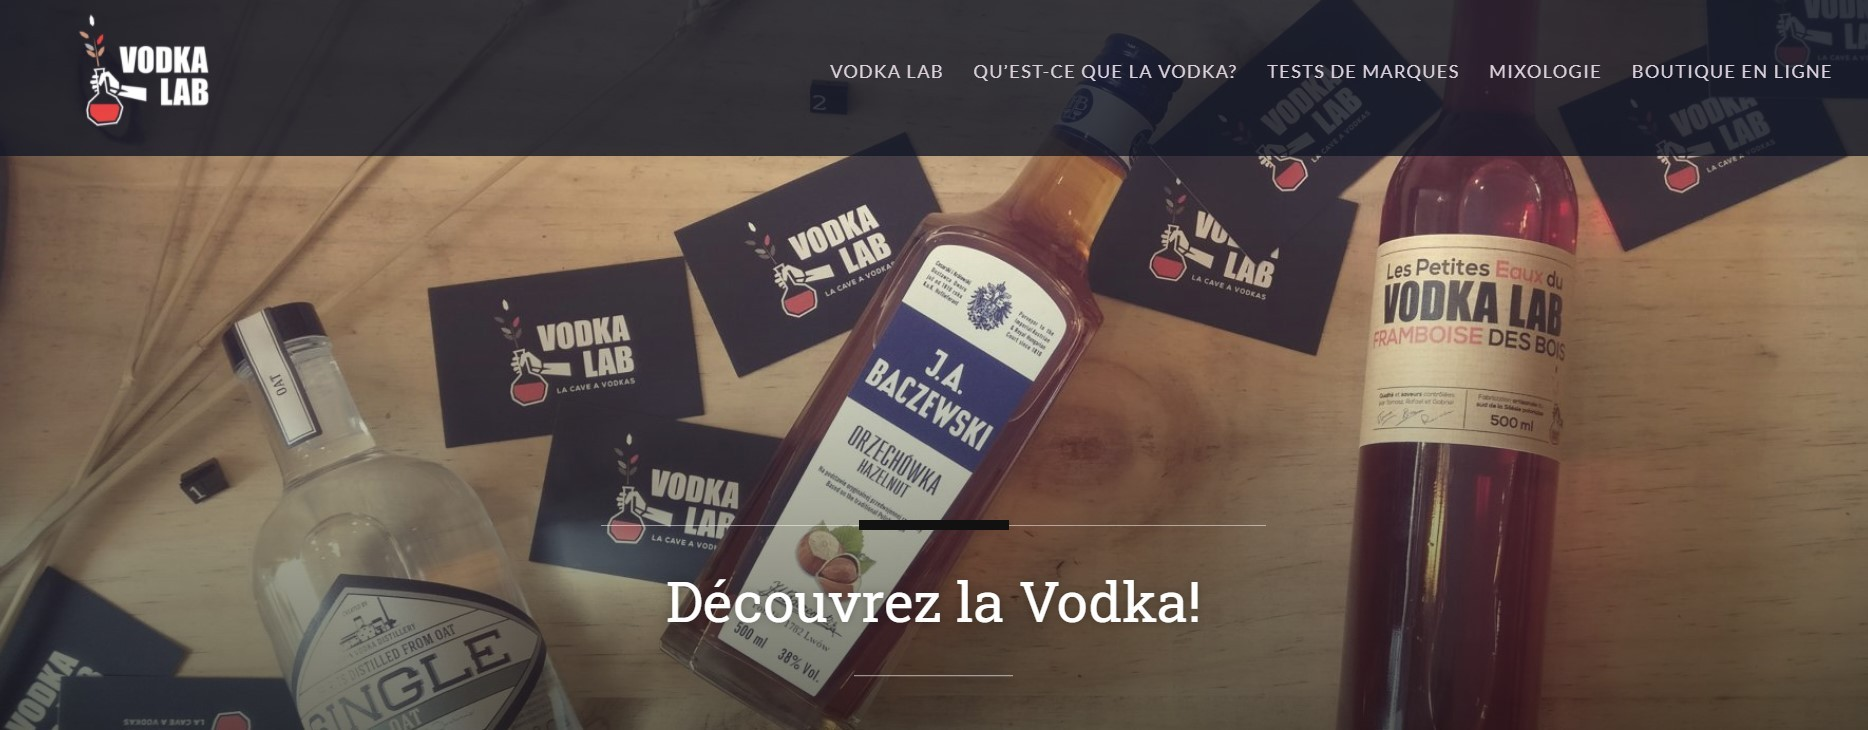 LE BLOG VODKA LAB